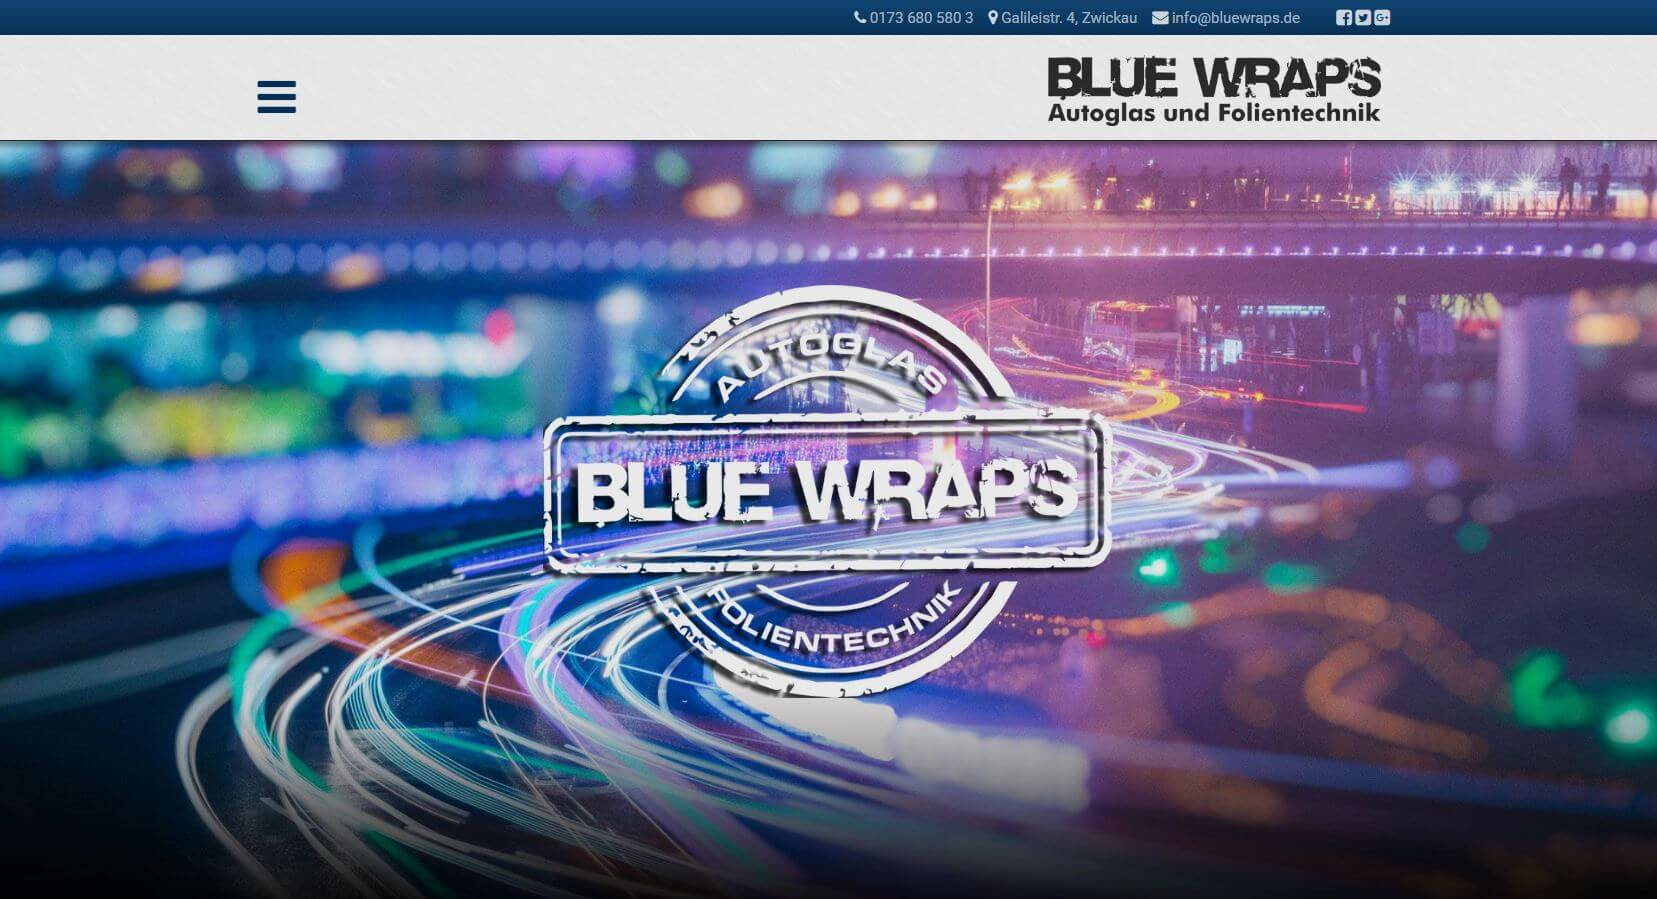 Screenshot Blue Wars Autoglas und Folientechnik